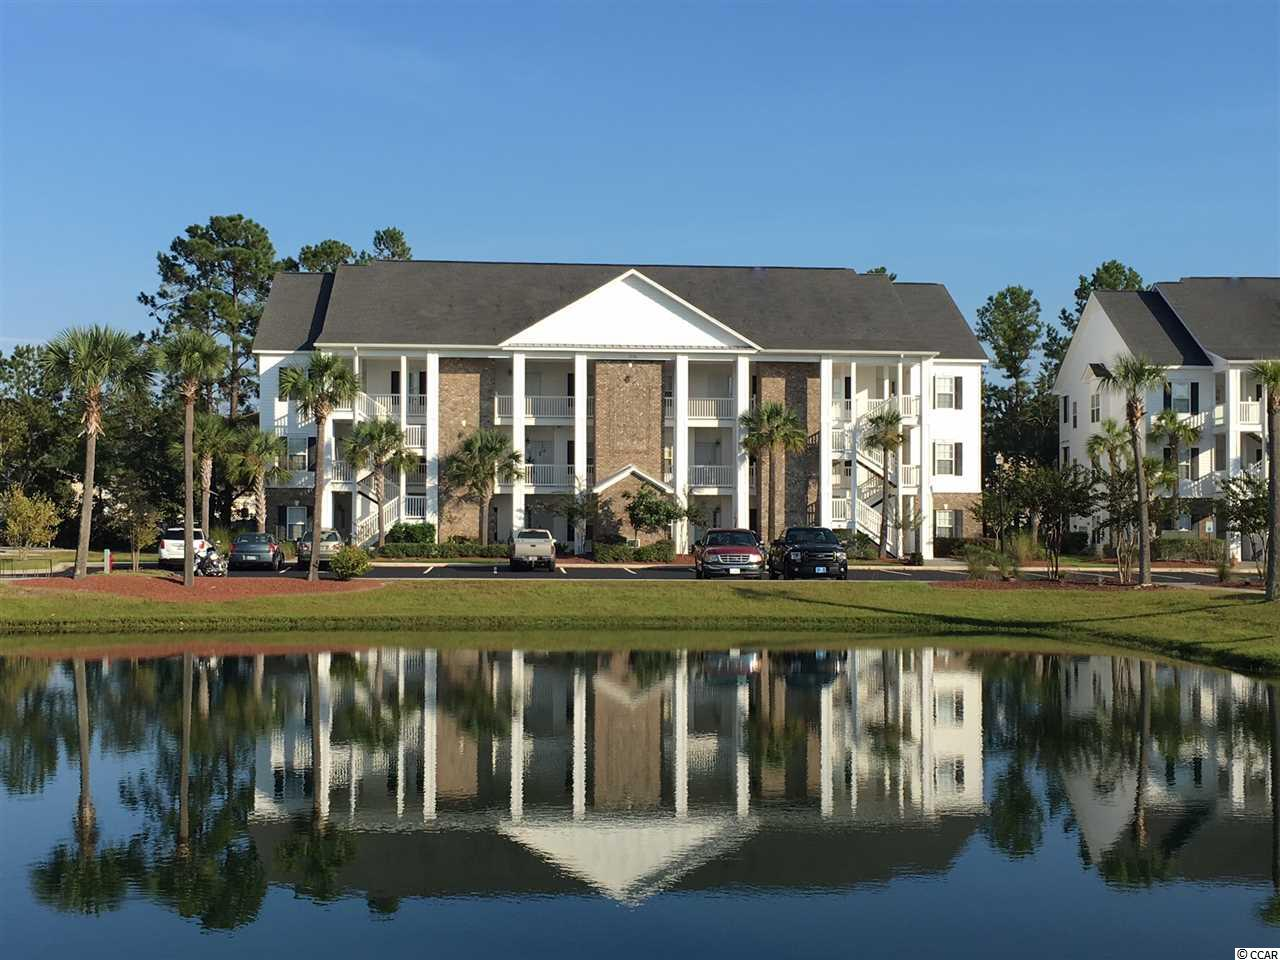 Newly constructed Villas that are two and three bedrooms with two full baths. Very spacious units with 9 foot ceilings, (vaulted ceilings on Third Floor Only) soft close cabinets through out, energy efficient, walk in closets in the master, granite countertops, screened in porches and outside storage units. This community will be totally gated once the last building is completed, low HOA fees and only 2 miles to the beach. This property is so centrally located on the South end to everything. This is a perfect primary home, second home or beach retreat. The units are all on one level and the care free living provide by this community gives you the full essence of coastal living.  Model Now Open With agent on duty  Monday - Friday 10 to 4 Sat 12 to 4 and Sunday 12 to 3